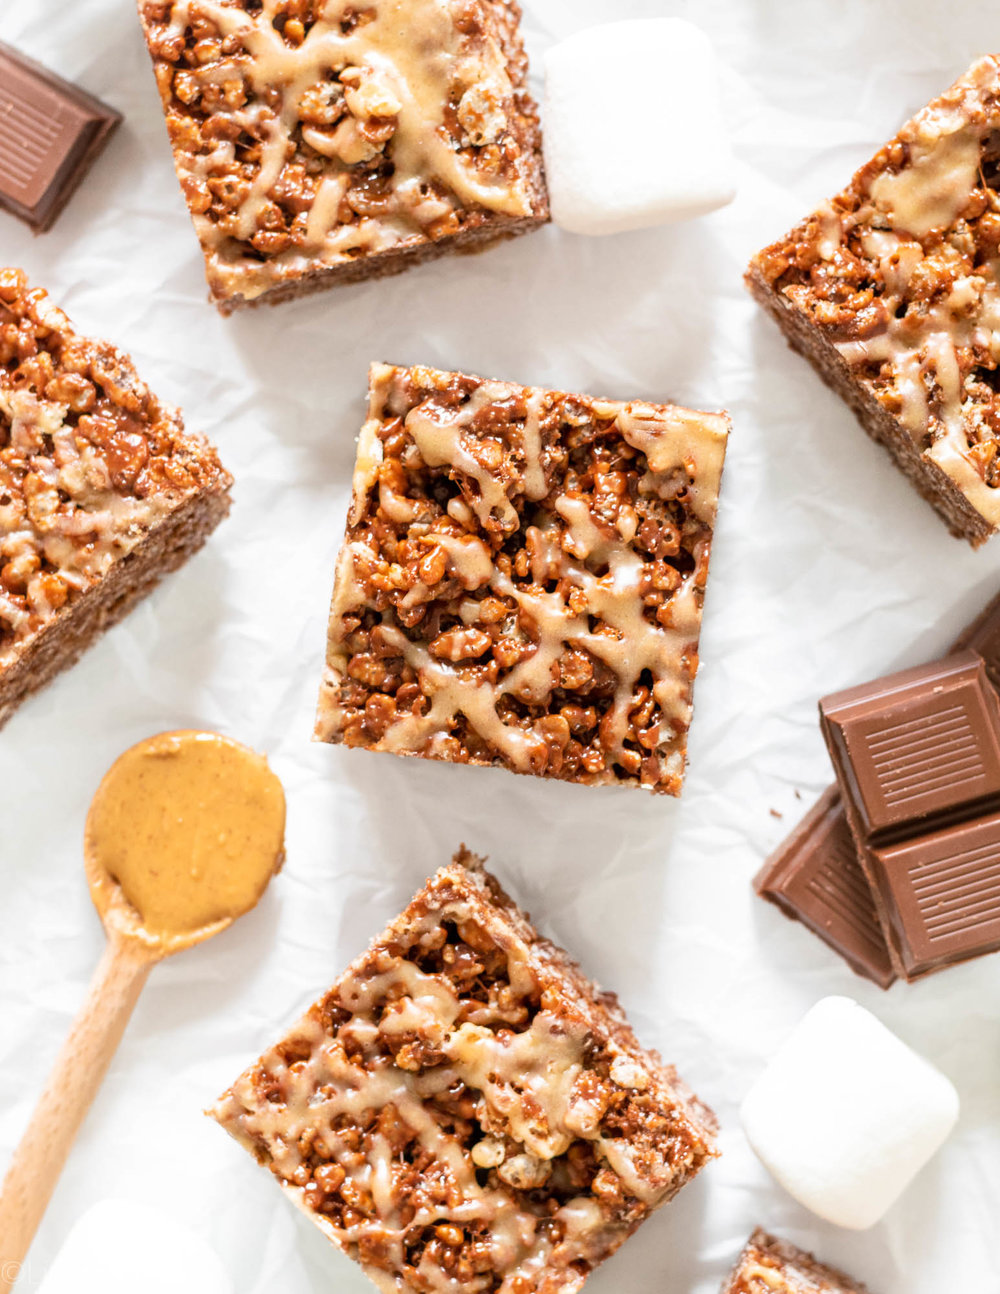 Peanut-Butter-Chocolate-Rice-Krispie-Treats-9.jpg